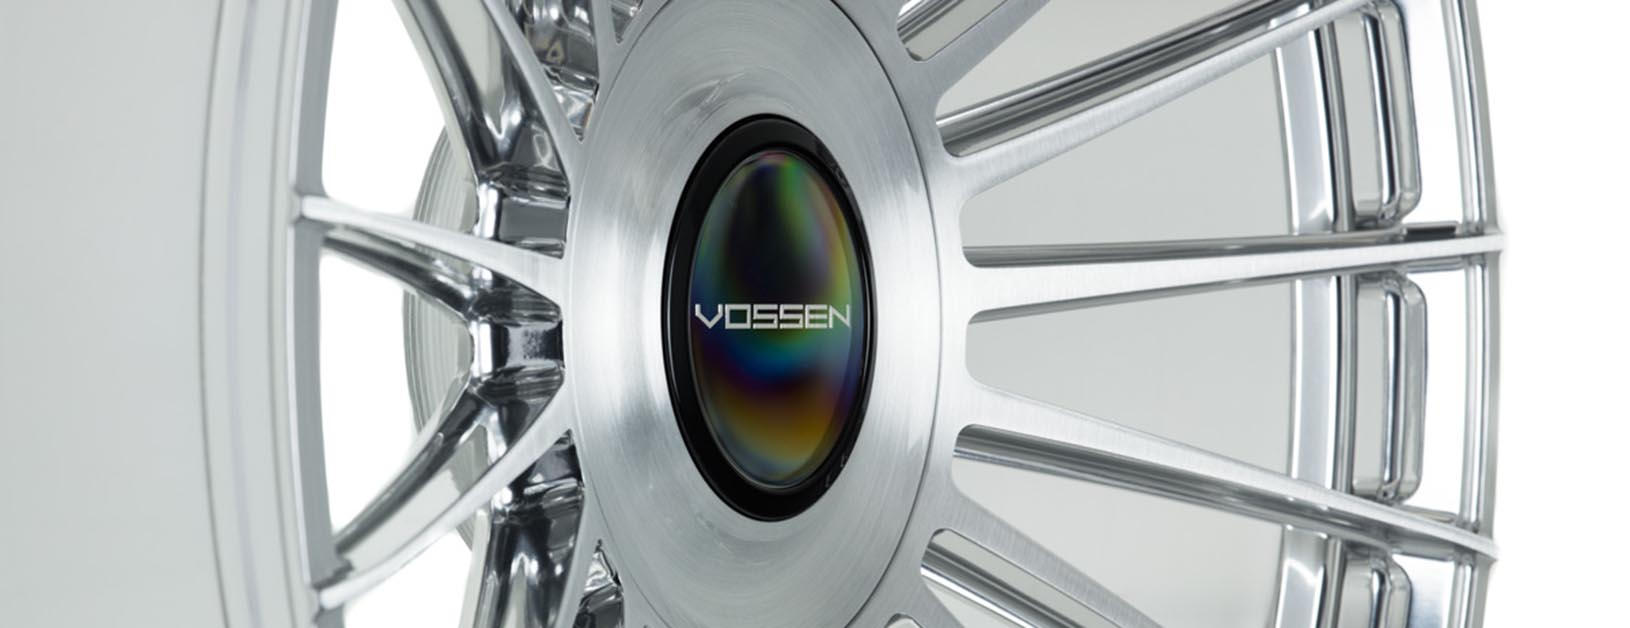 COMING-SOON-Vossen-Forged-S17-13-Wheel-C04-Gloss-Clear-©-Vossen-Wheels-2018-1028-1